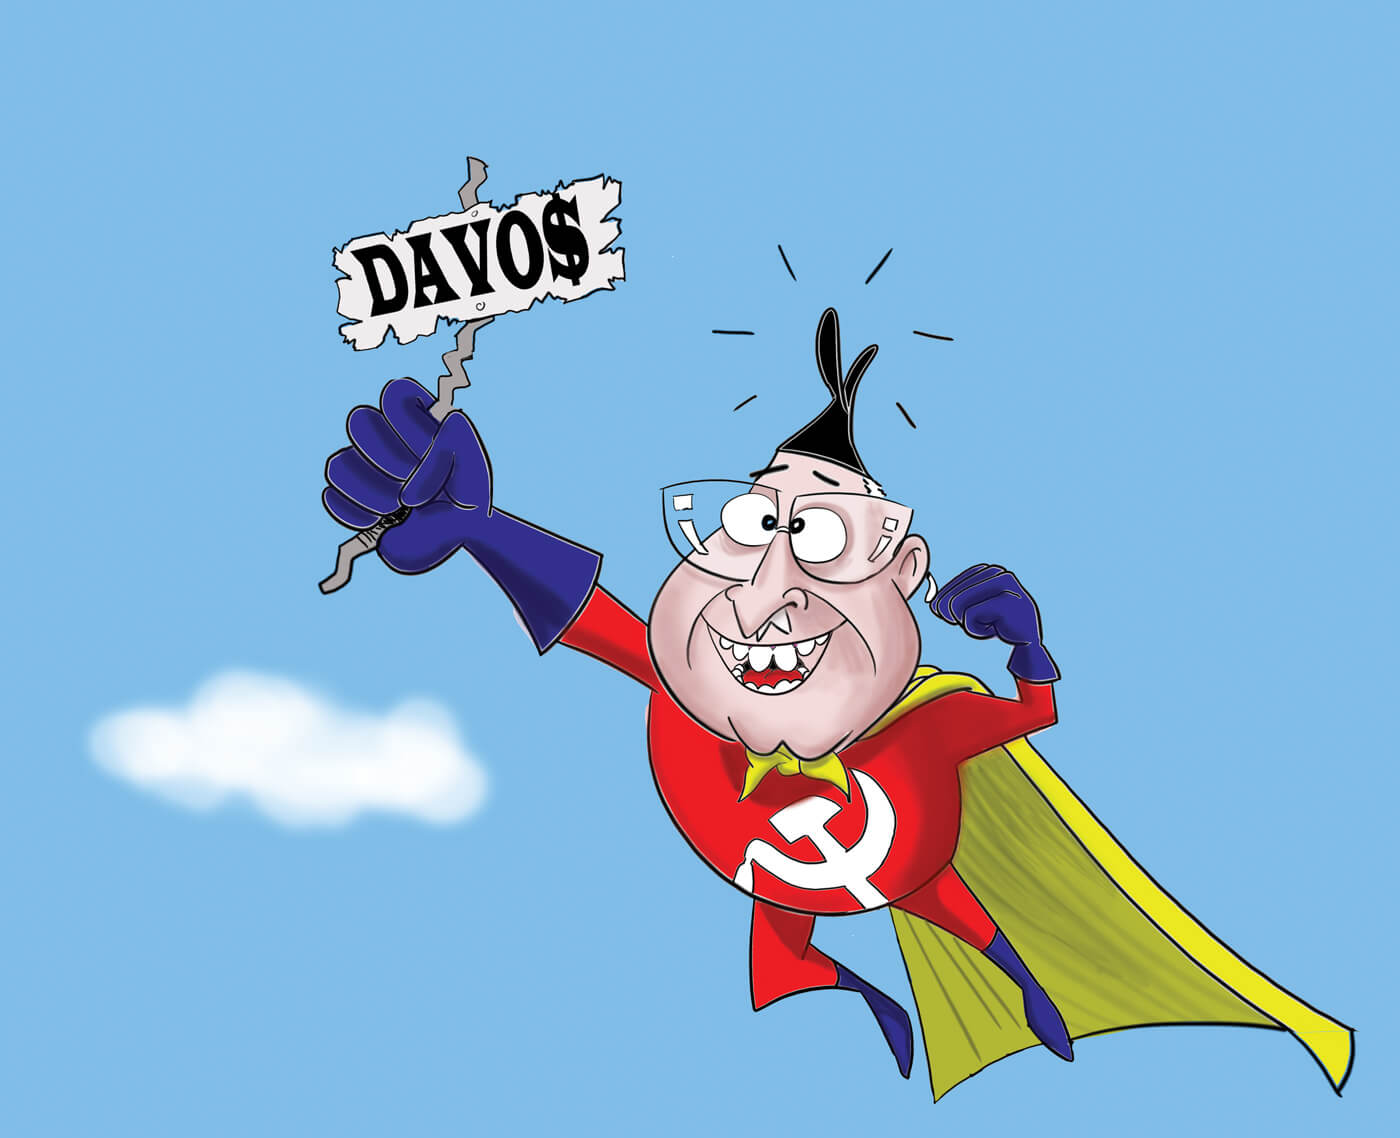 To Davos with hammer and sickle